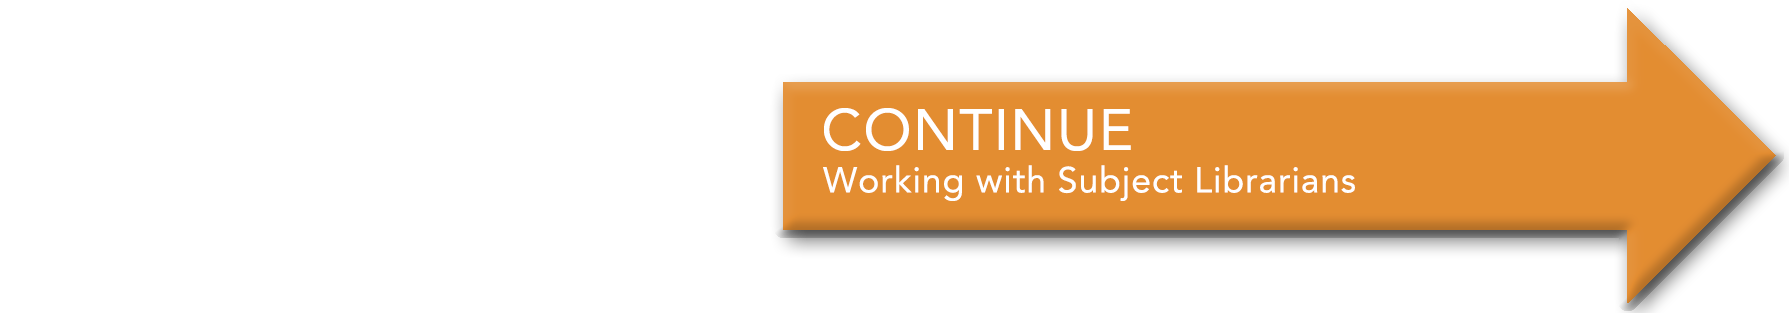 Continue to Working with Subject Librarians